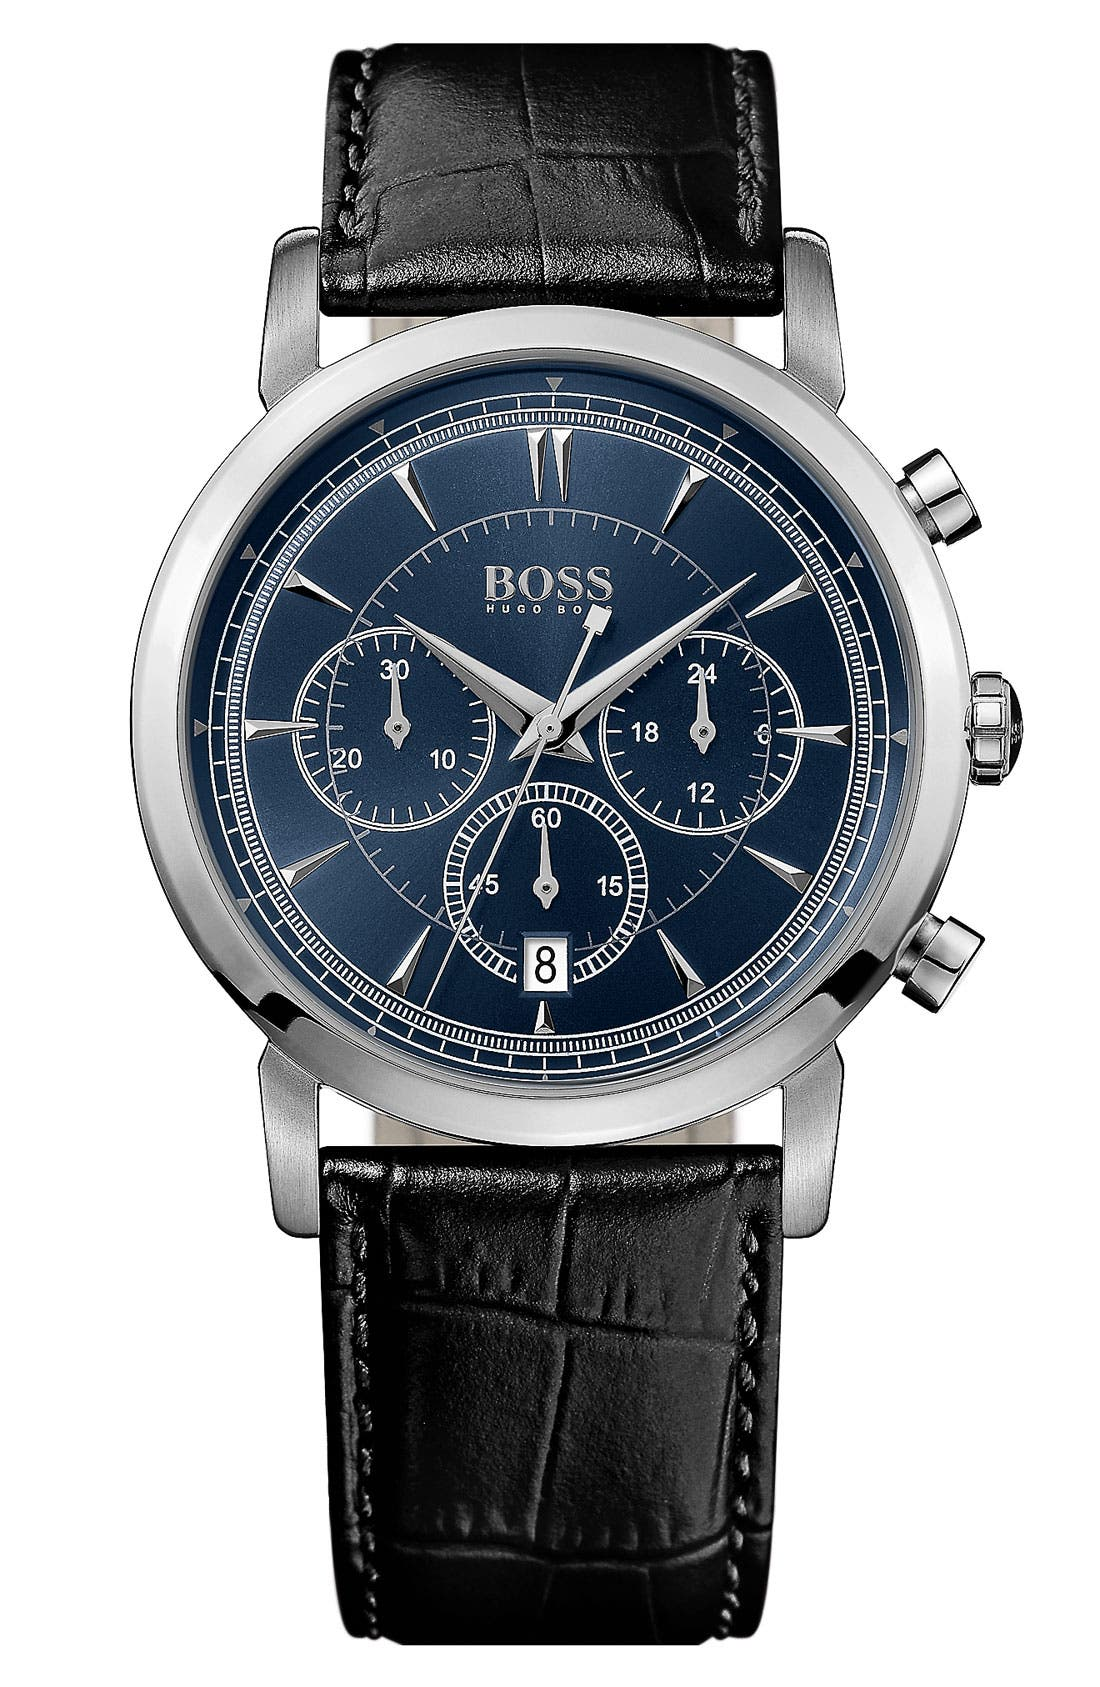 HUGO BOSS 'Classic' Round Chronograph Watch, 40mm,                         Main,                         color, Black/ Blue